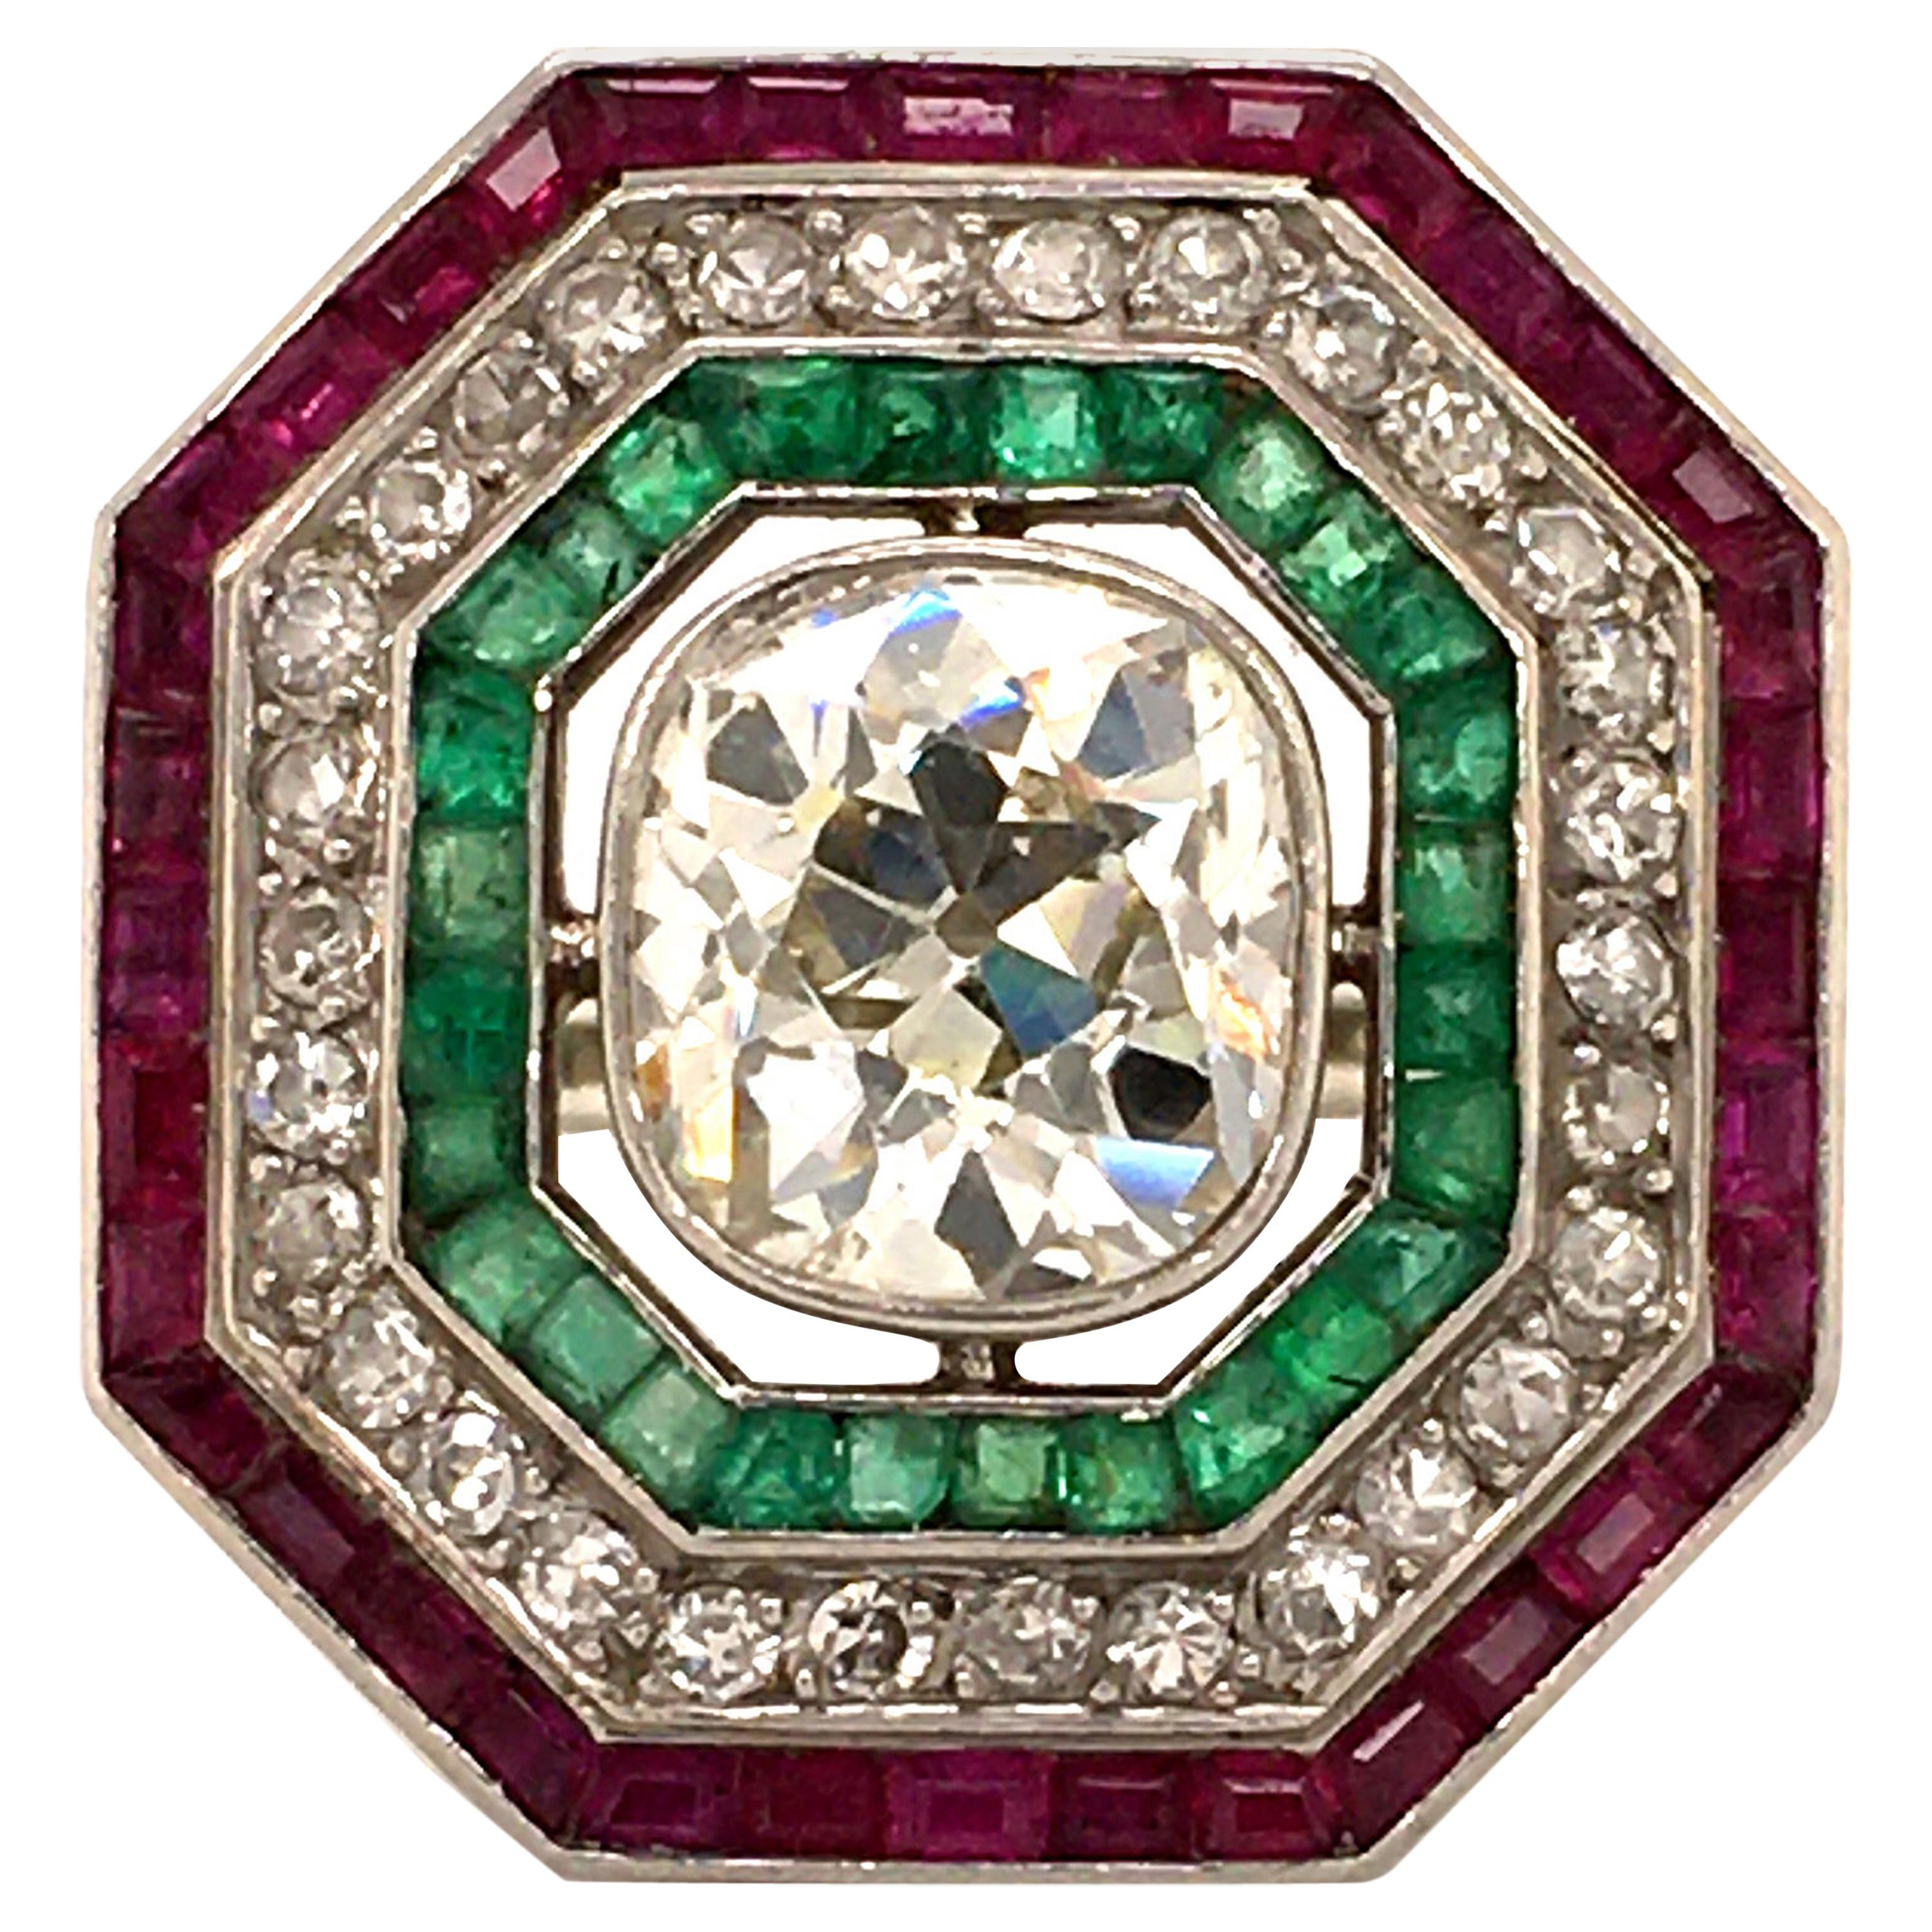 Antique Old Cut Diamond Ring in Platinum 950 with Emeralds and Rubies